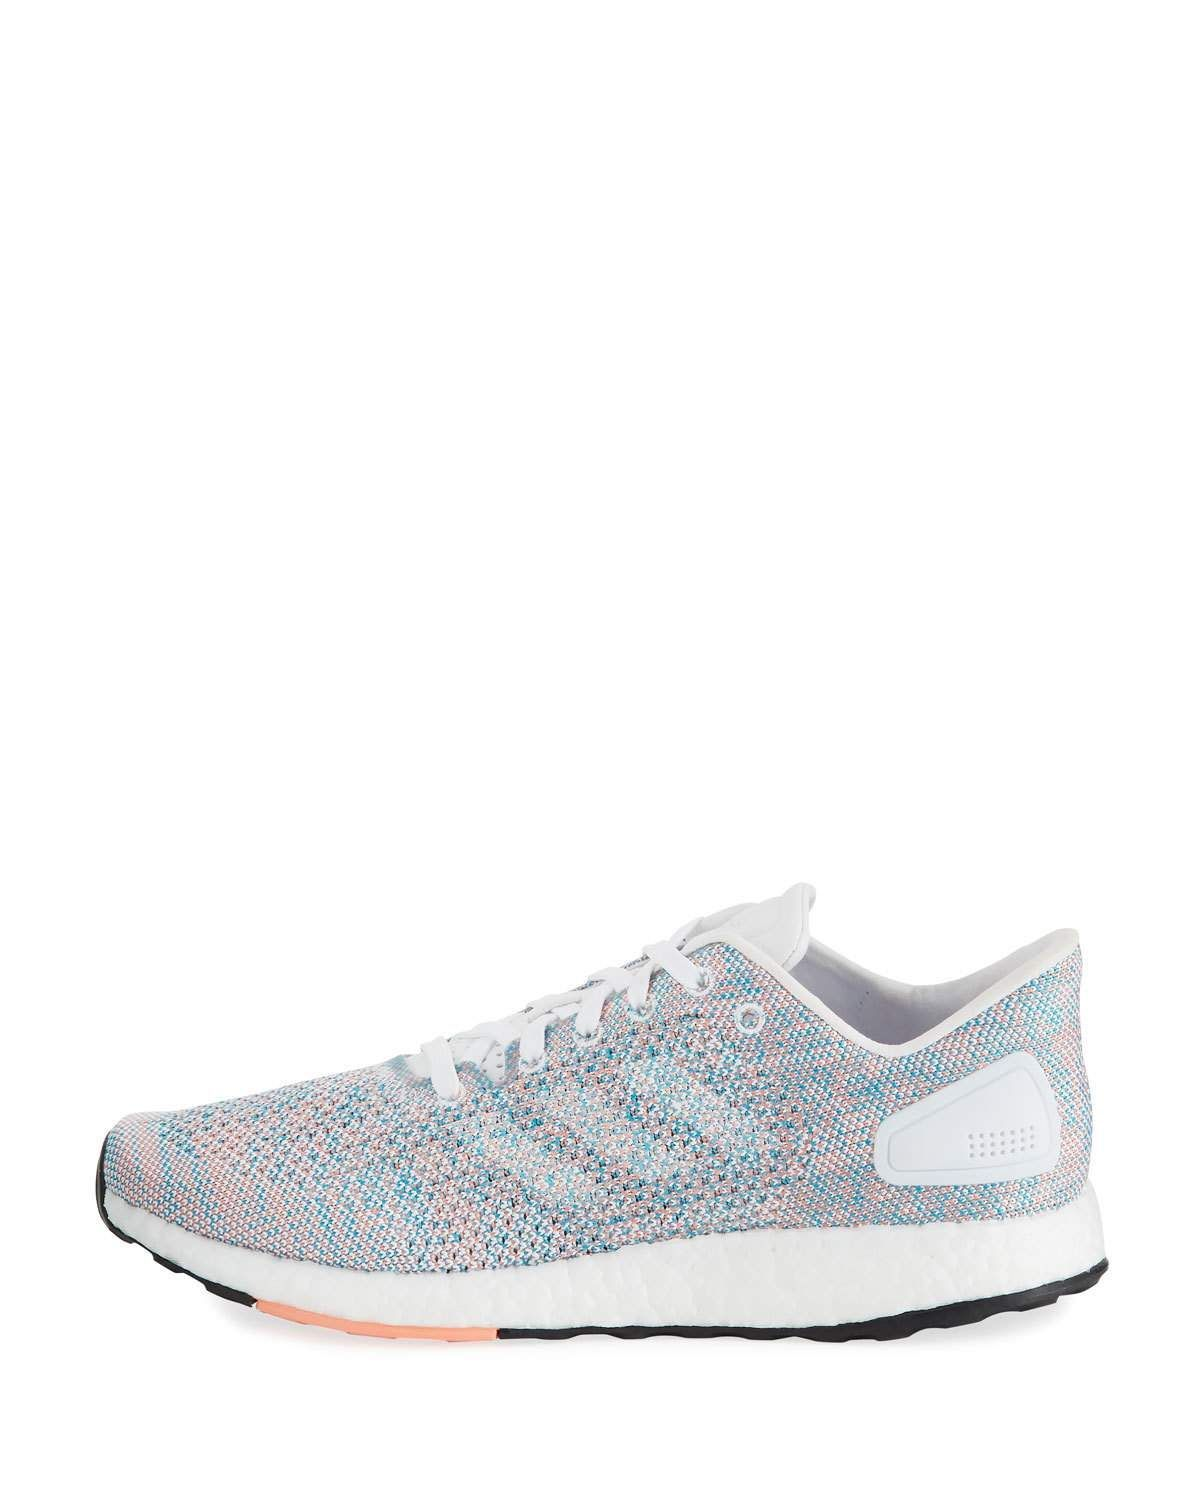 20aa0e60b Adidas PureBOOST Element Knit Trainer Sneakers  Sneakers